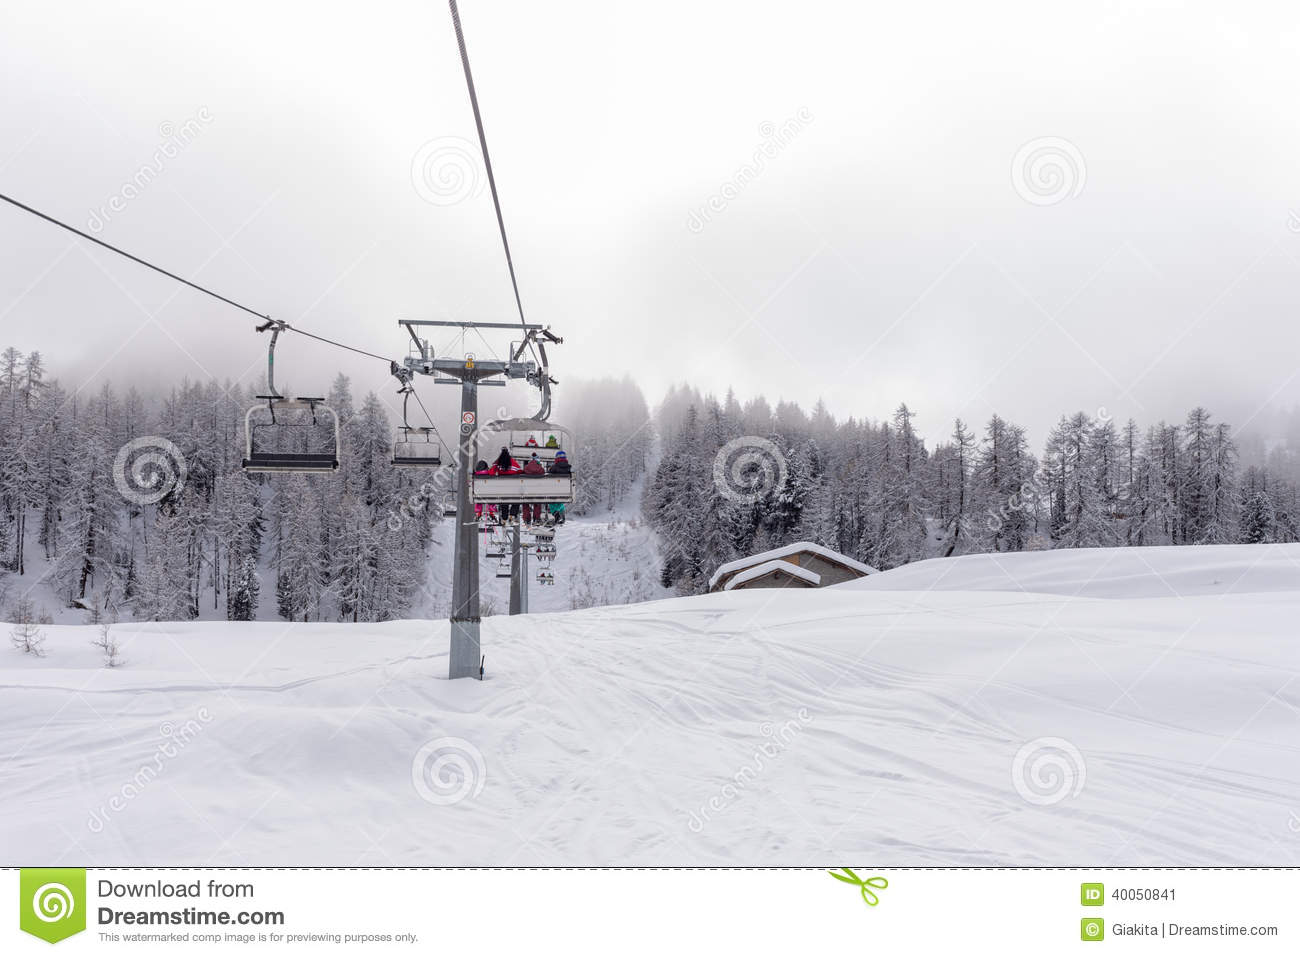 Ski Lift With Passengers In The Chair Stock Photo Image 40050841